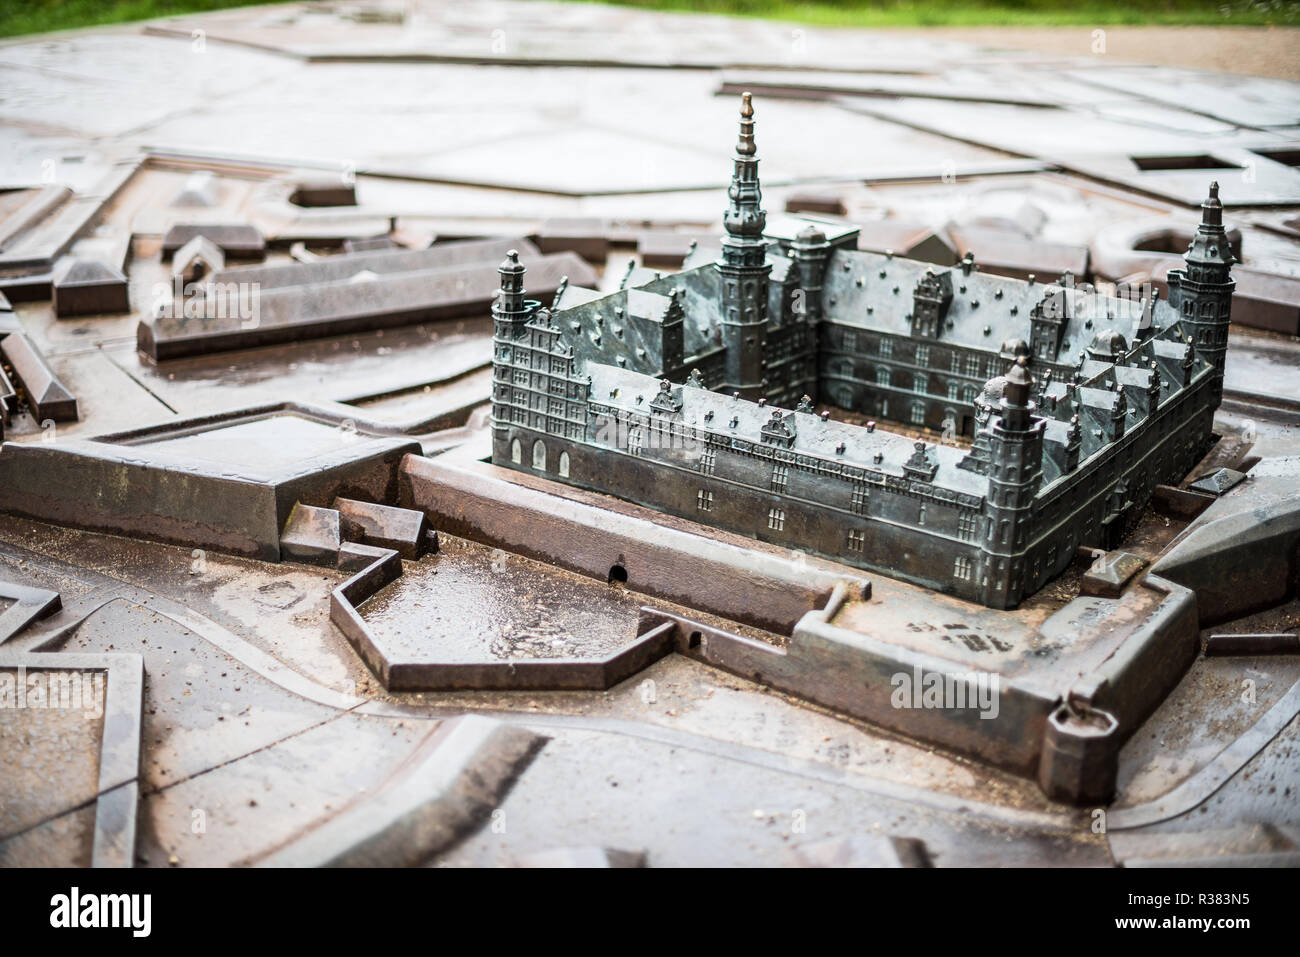 Known as Hamlet's Castle because William Shakespeare based his play Hamlet in the castle at Elsinore, Kronborg Castle sits on the narrow channel betwe - Stock Image